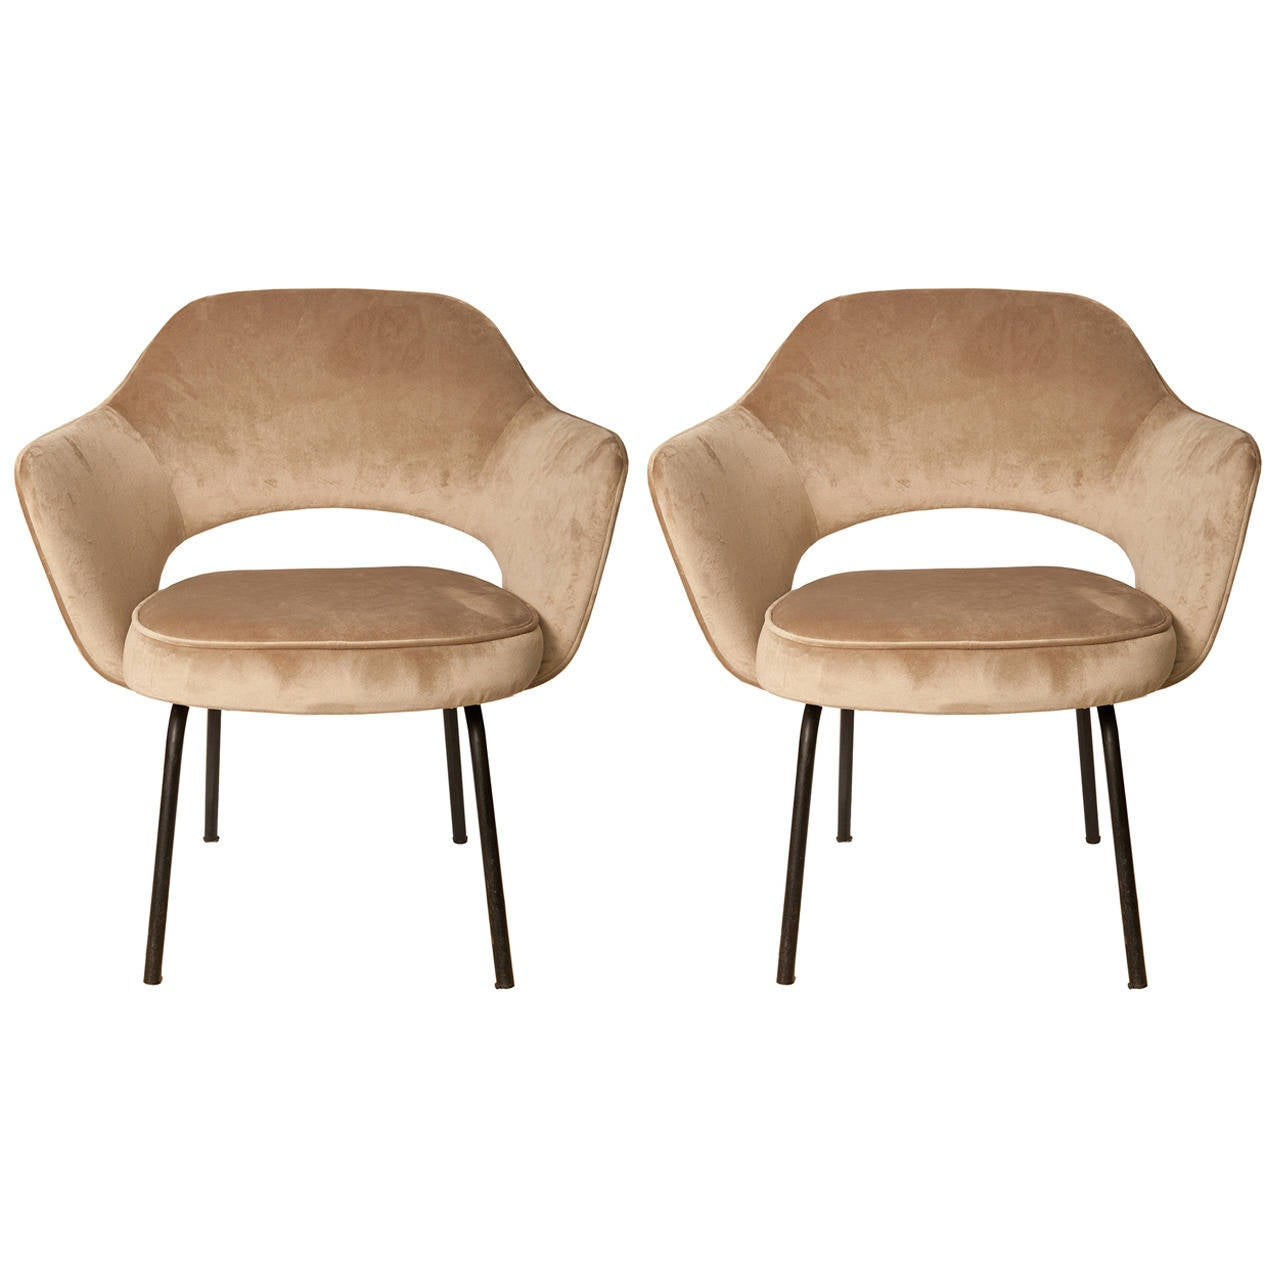 mid century danish modern style chairs at 1stdibs